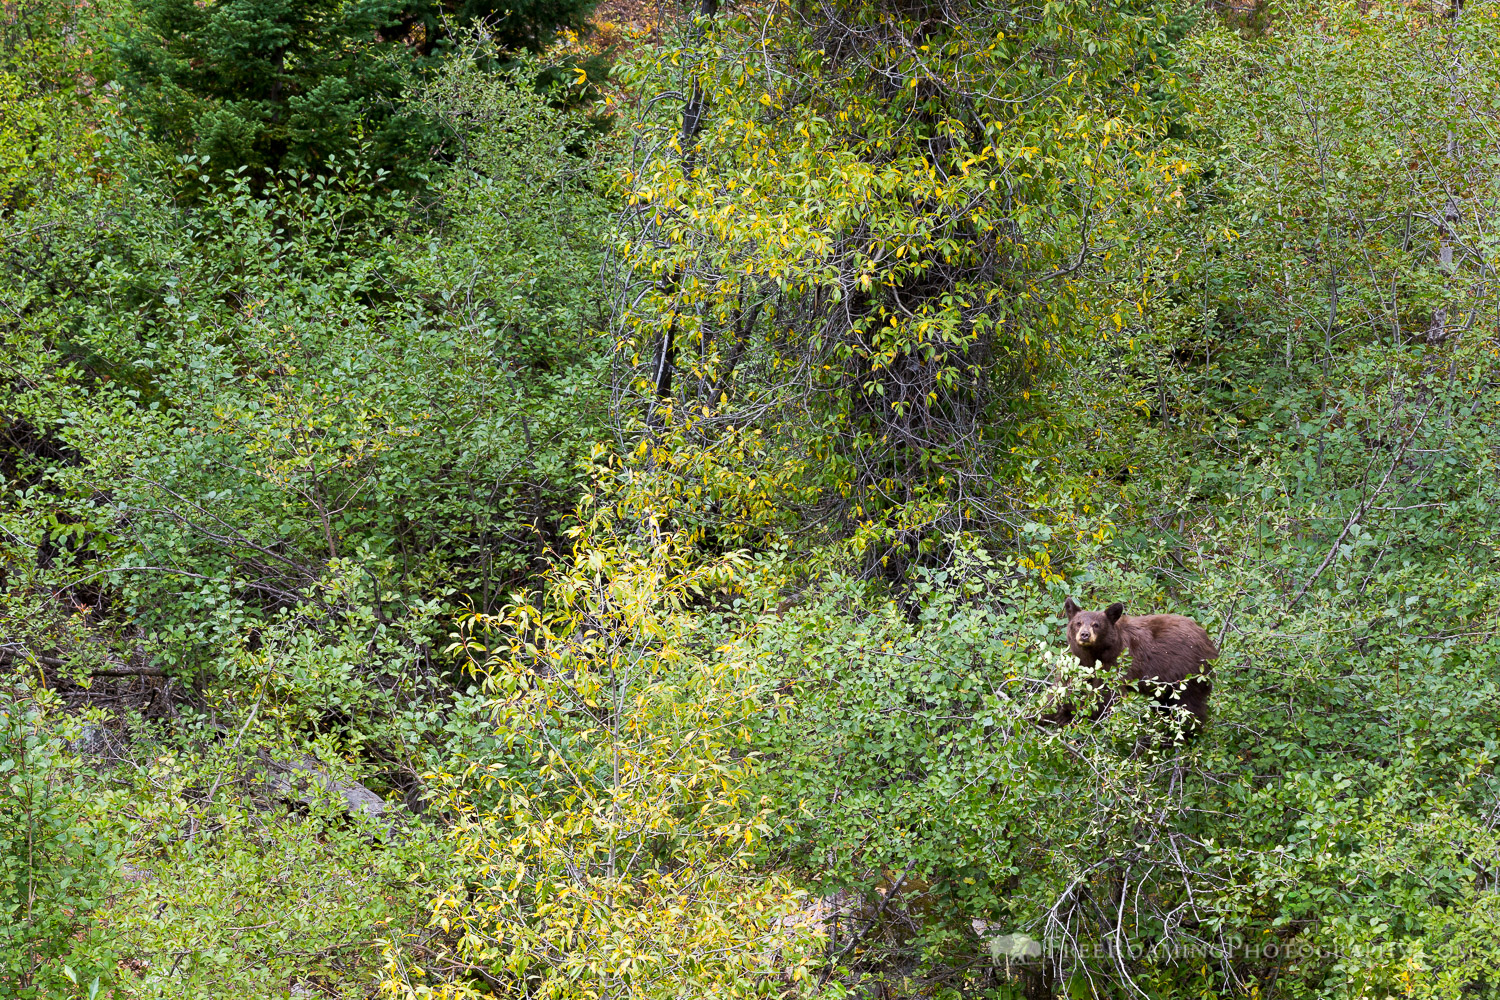 Black Bear in Bushes